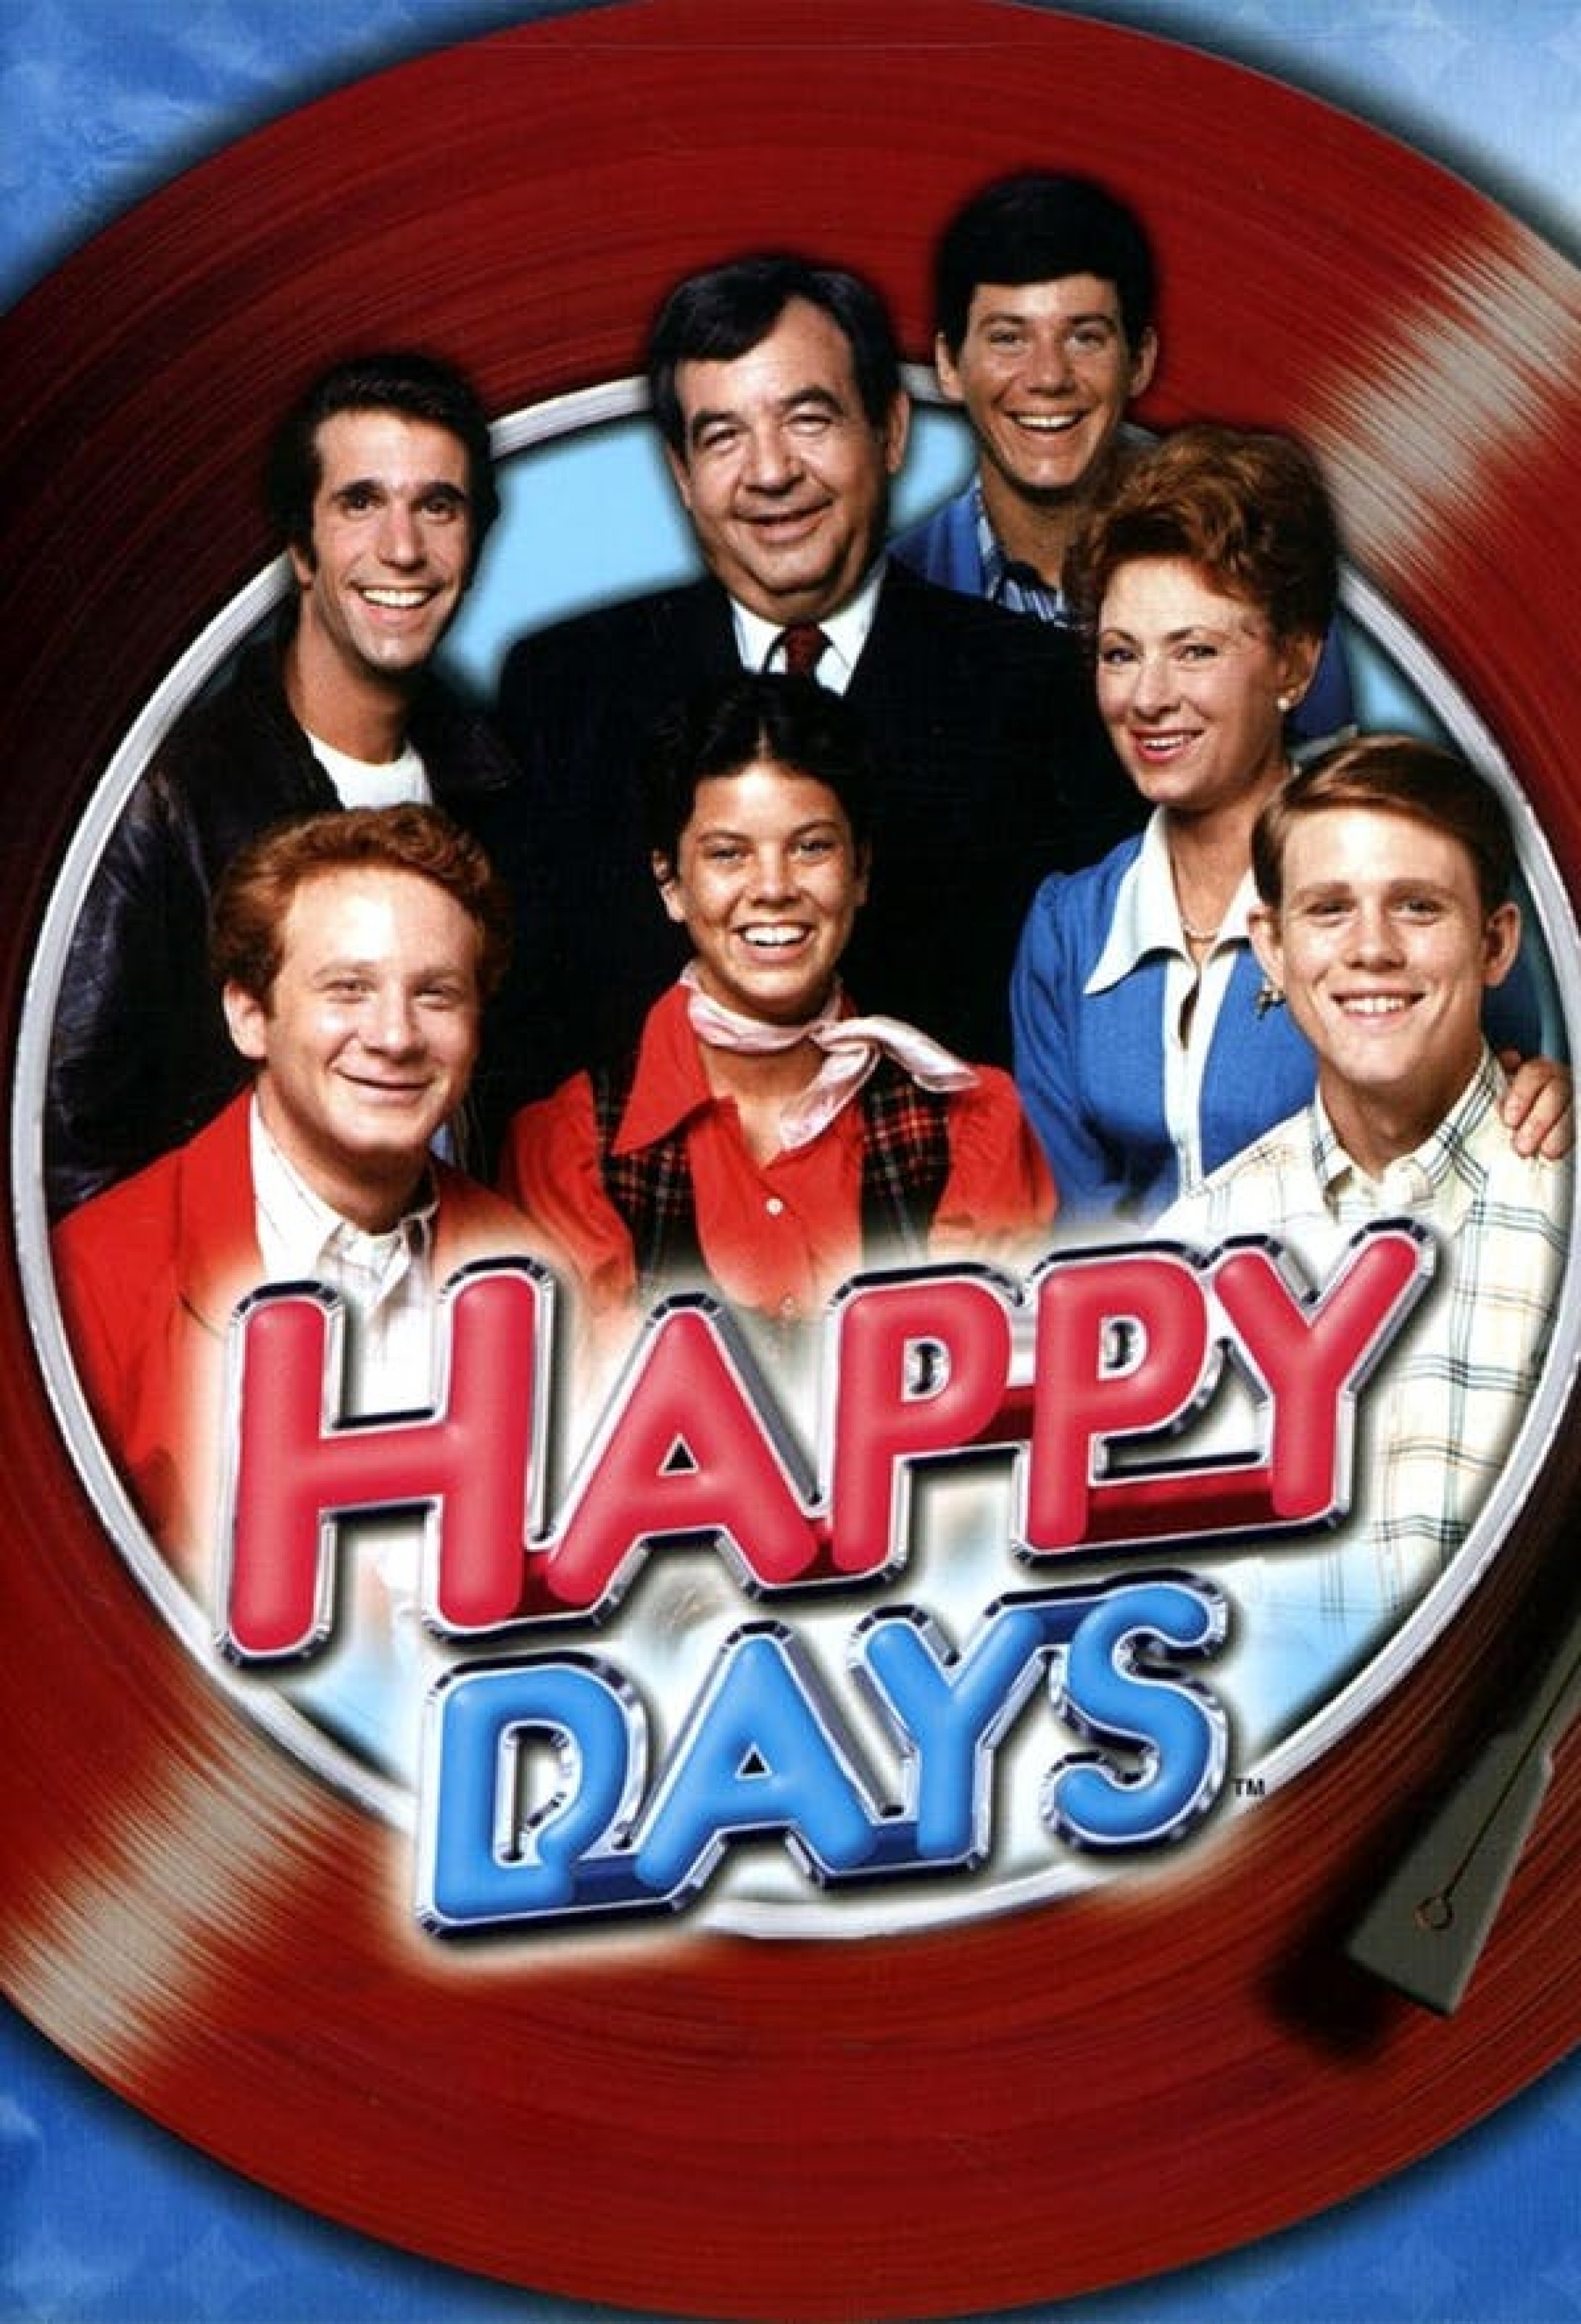 'Happy Days' ran on ABC from 1974 to 1984.